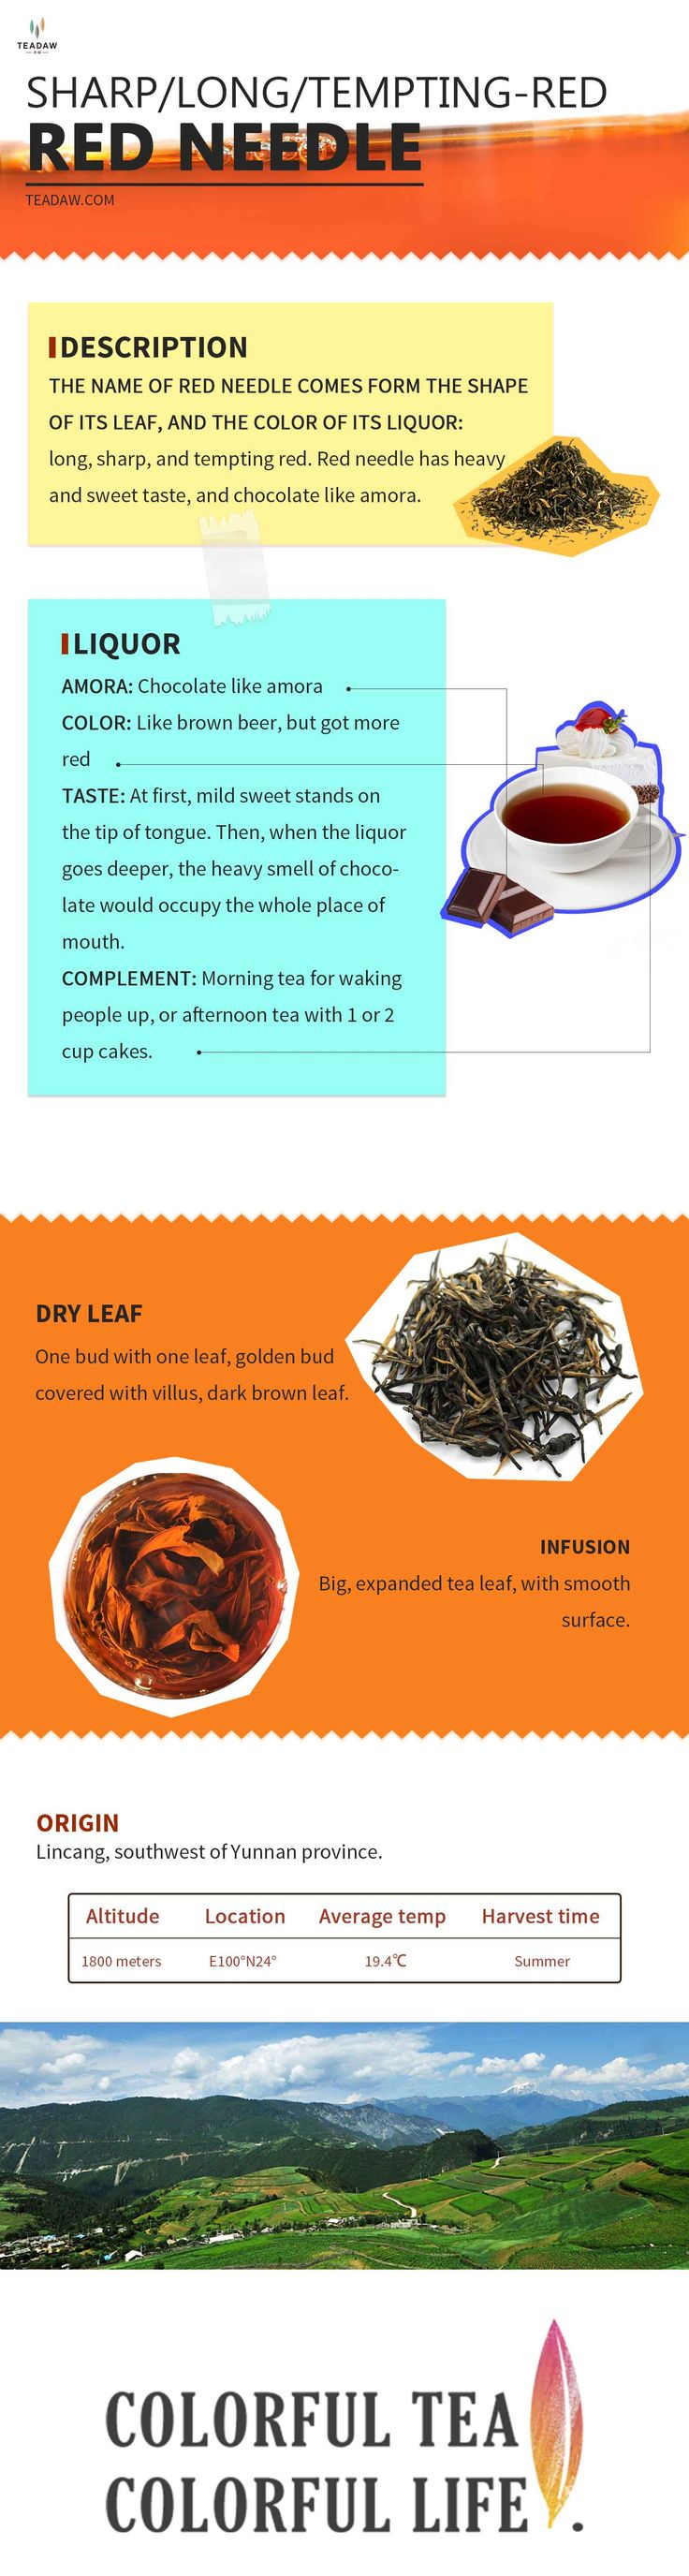 See our black tea, RED NEEDLE! #Tea #Blacktea